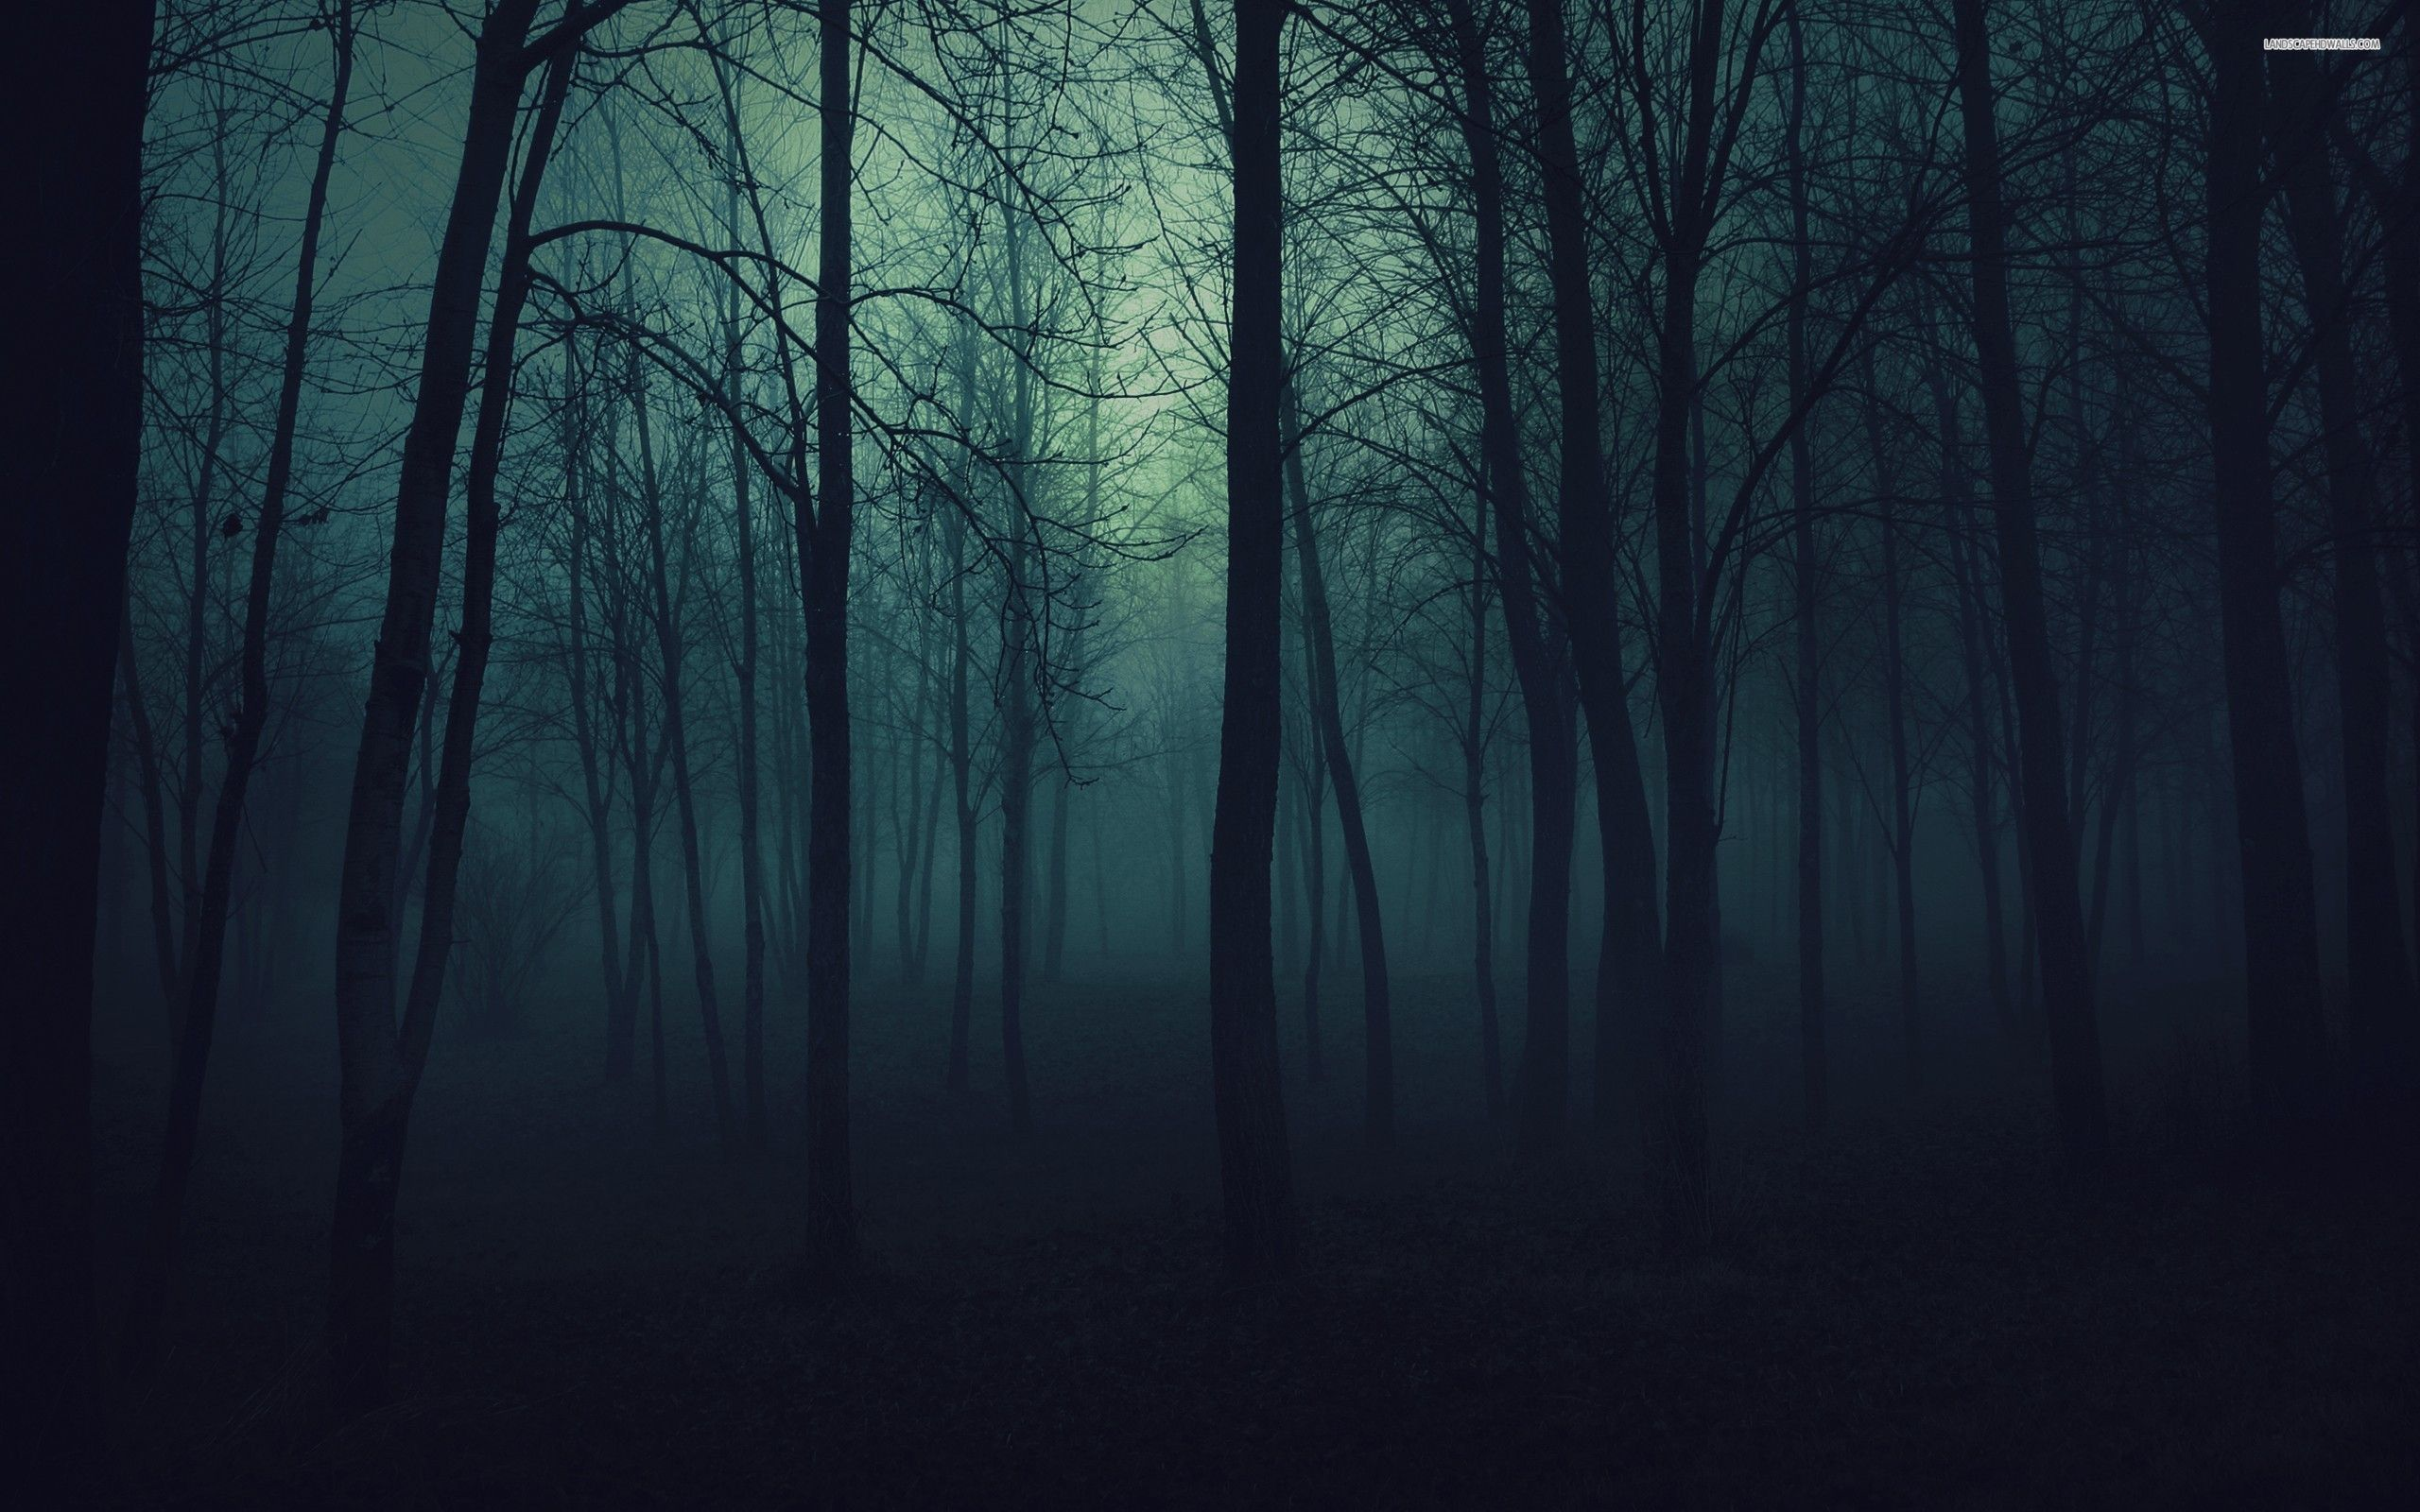 night forest trees in the forest at night wallpaper 689 at the